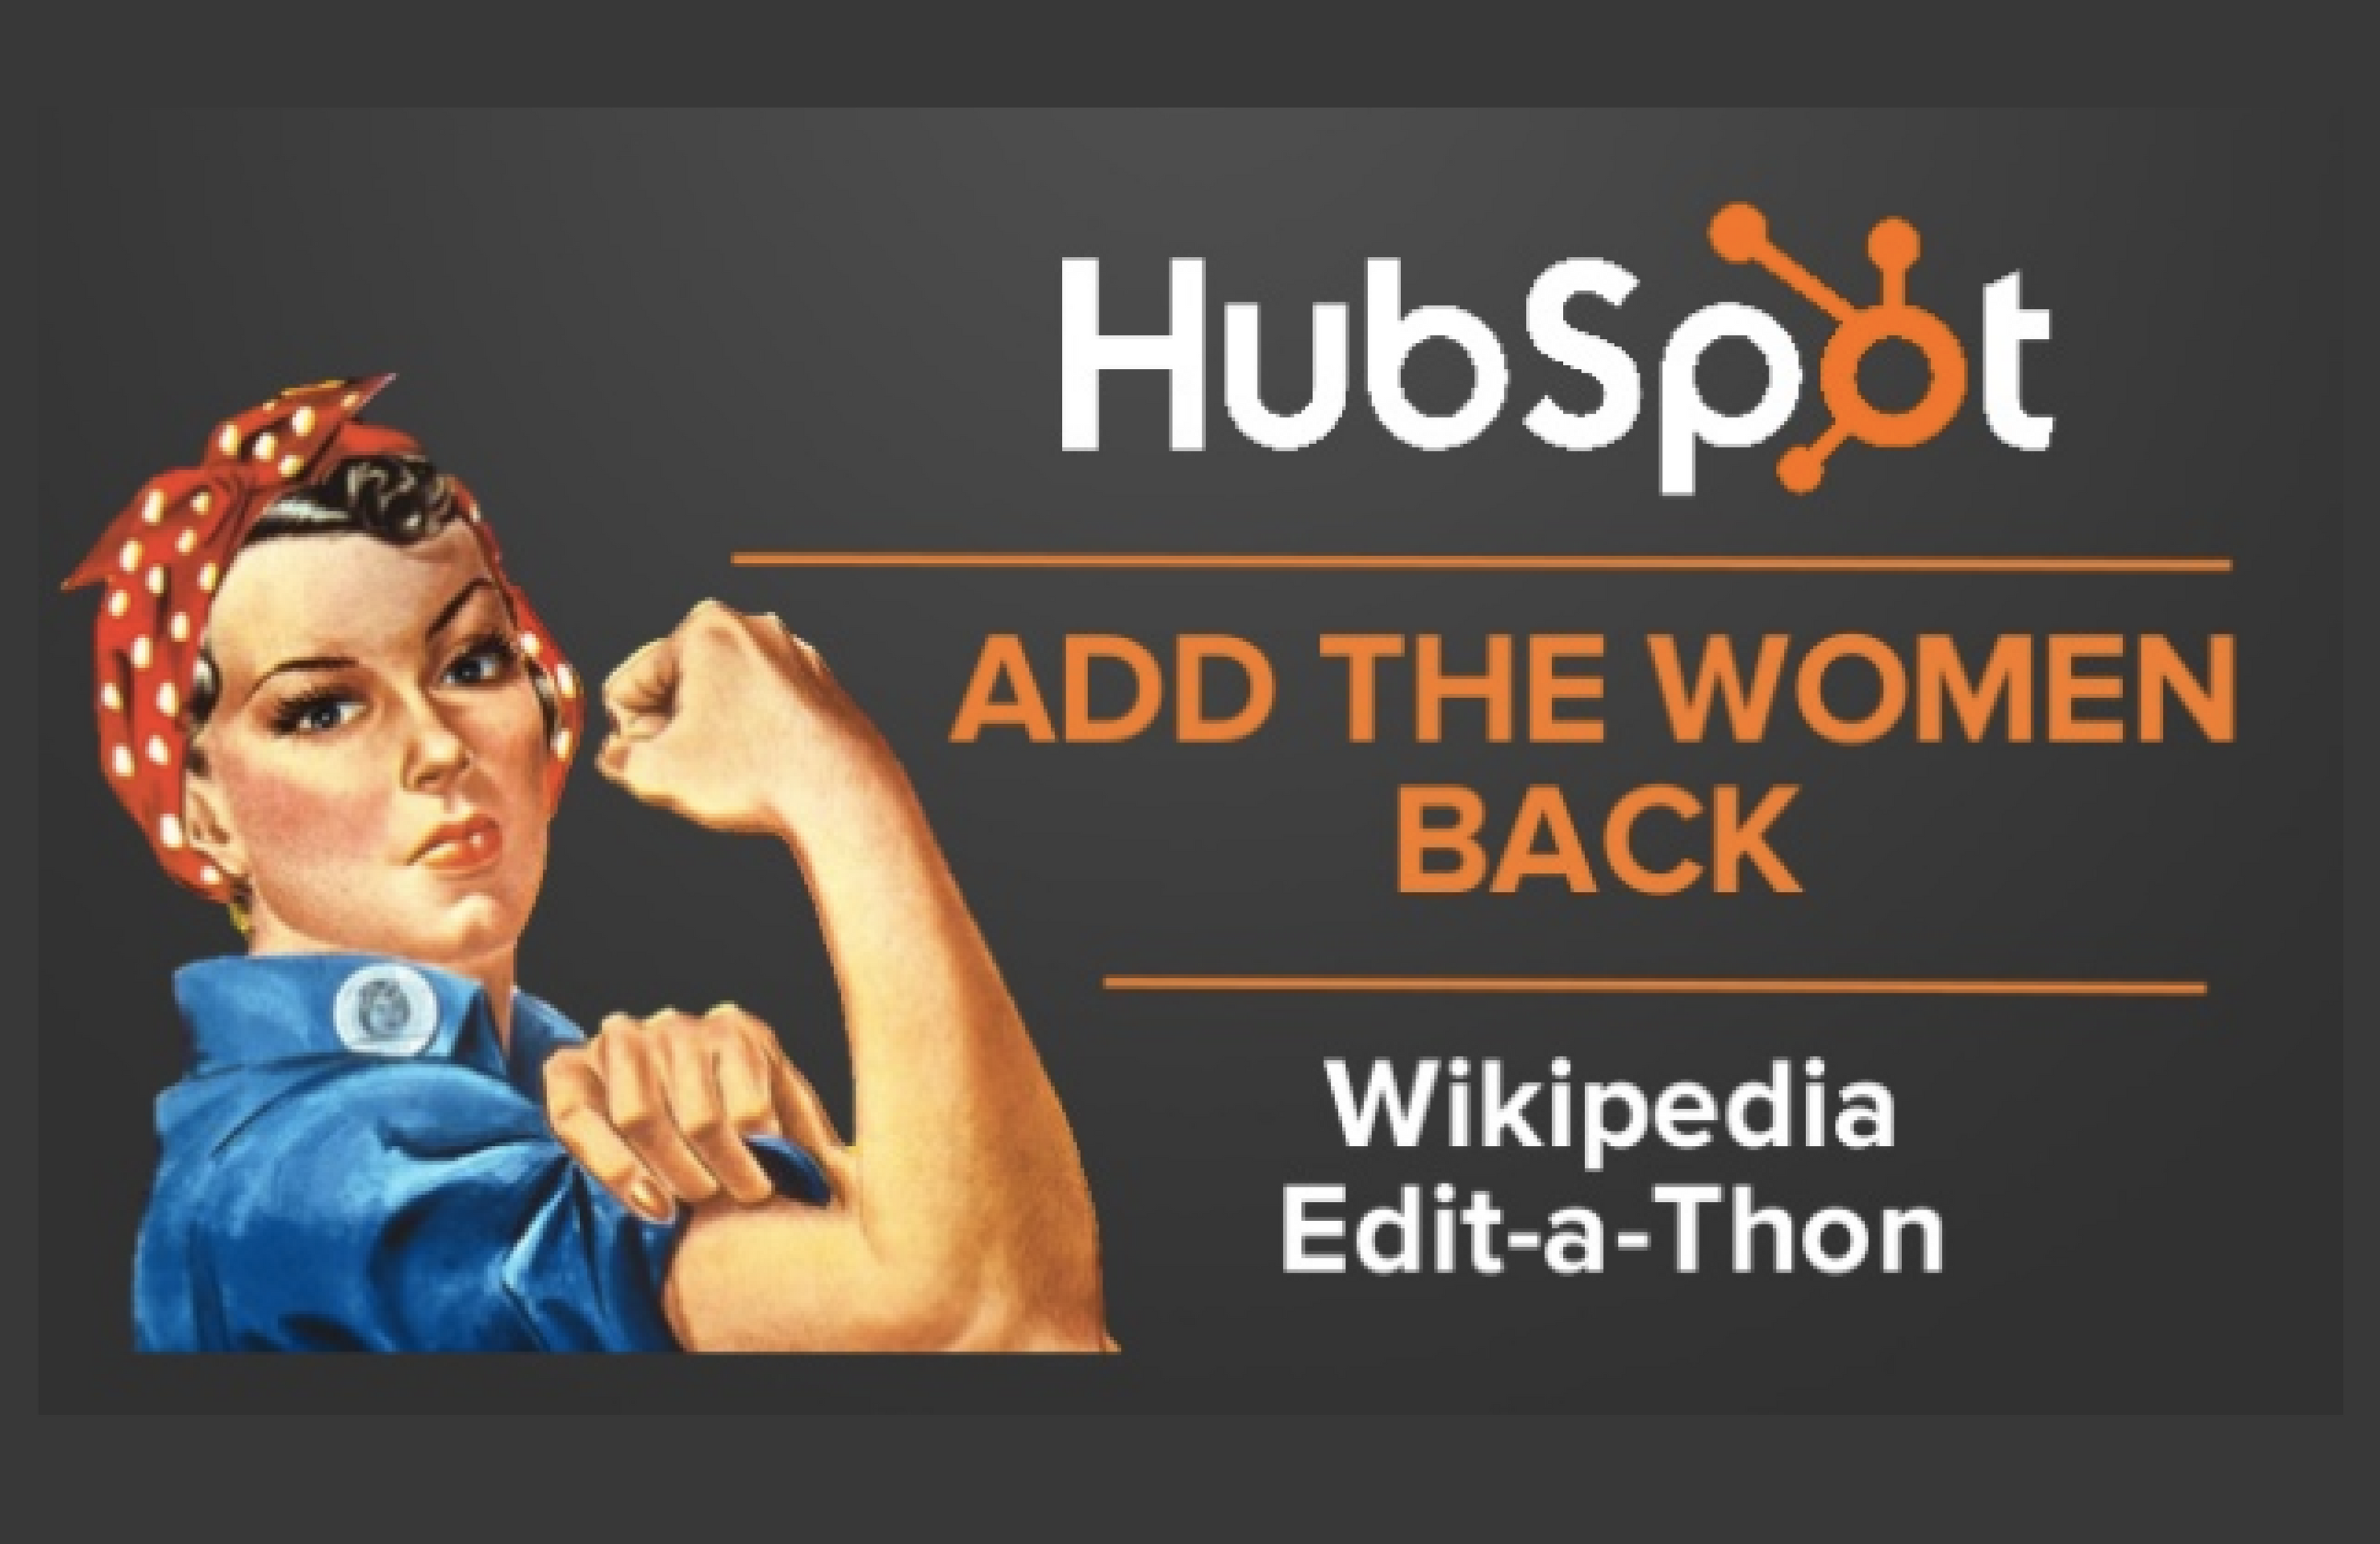 wikipedia_edit_a_thon